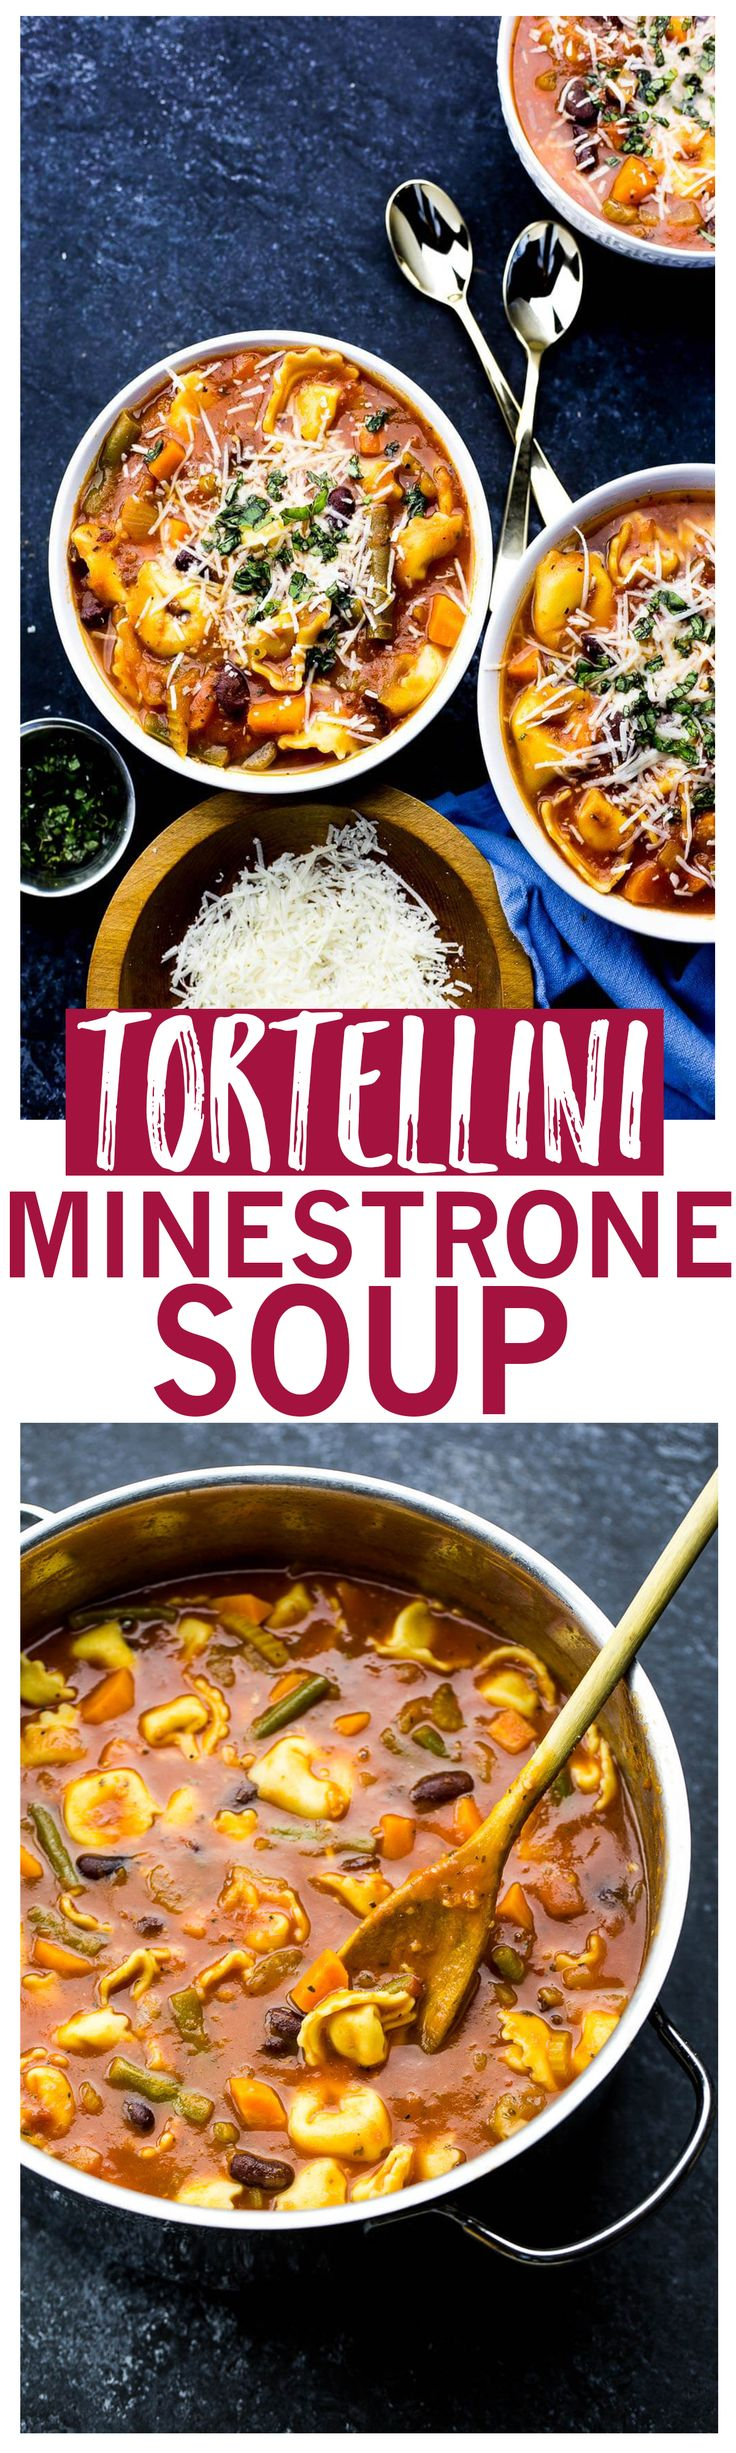 30-Minute Tortellini Minestrone Soup is a filling, high-fibe vegetarian dinner that comes together quickly for those busy weeknights!